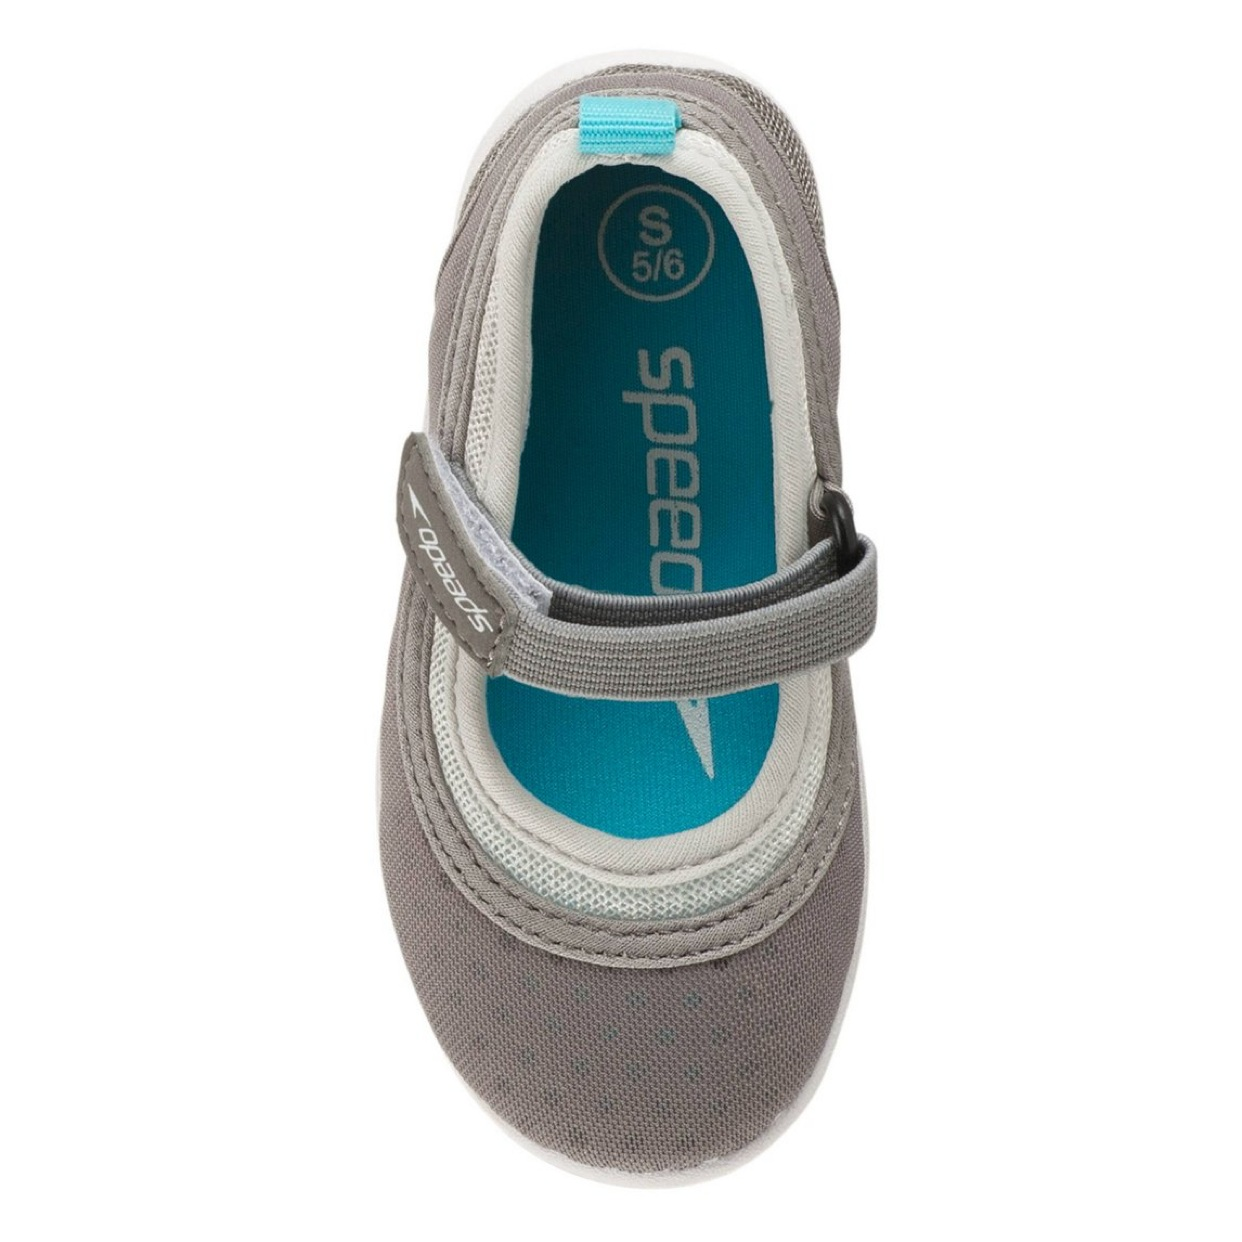 - These work so well for Ms. C! We go to the splash pad often and I love that these don't fall off! I don't have to worry about her little toes getting burned on the hot concrete or stepping on something sharp!Find them here.